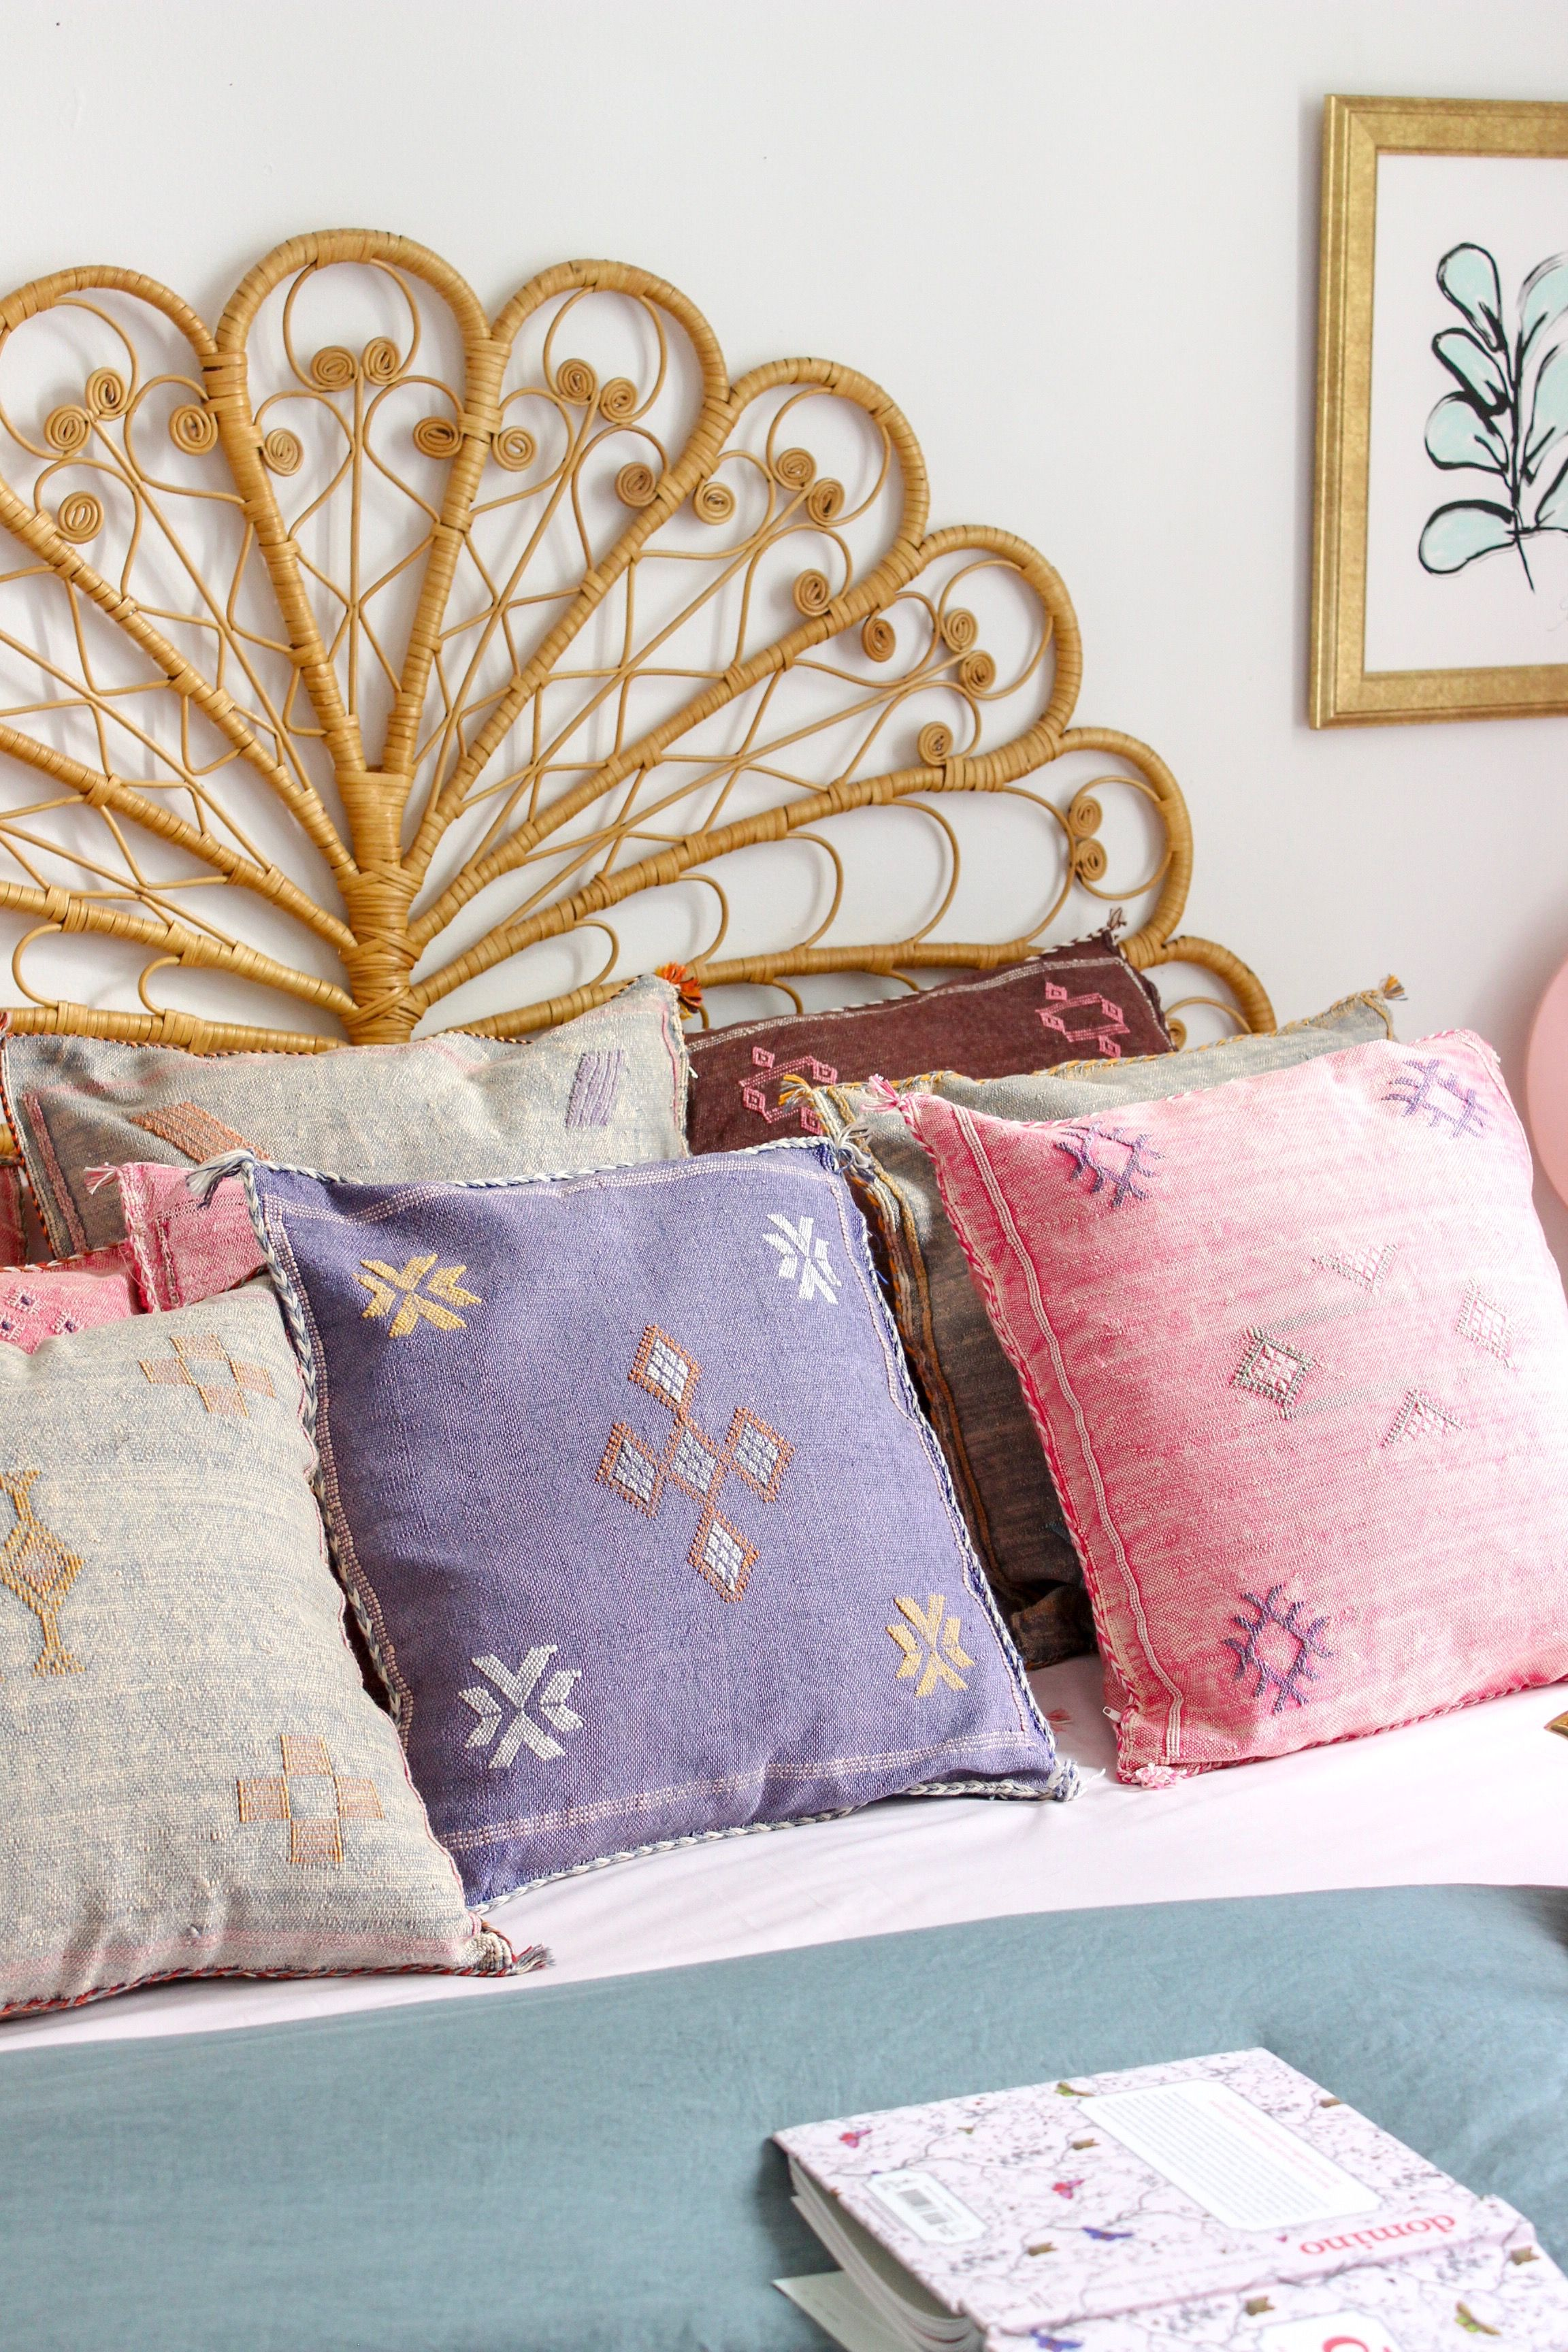 Romantic bed cactus silk kilim pillows from baba souk home